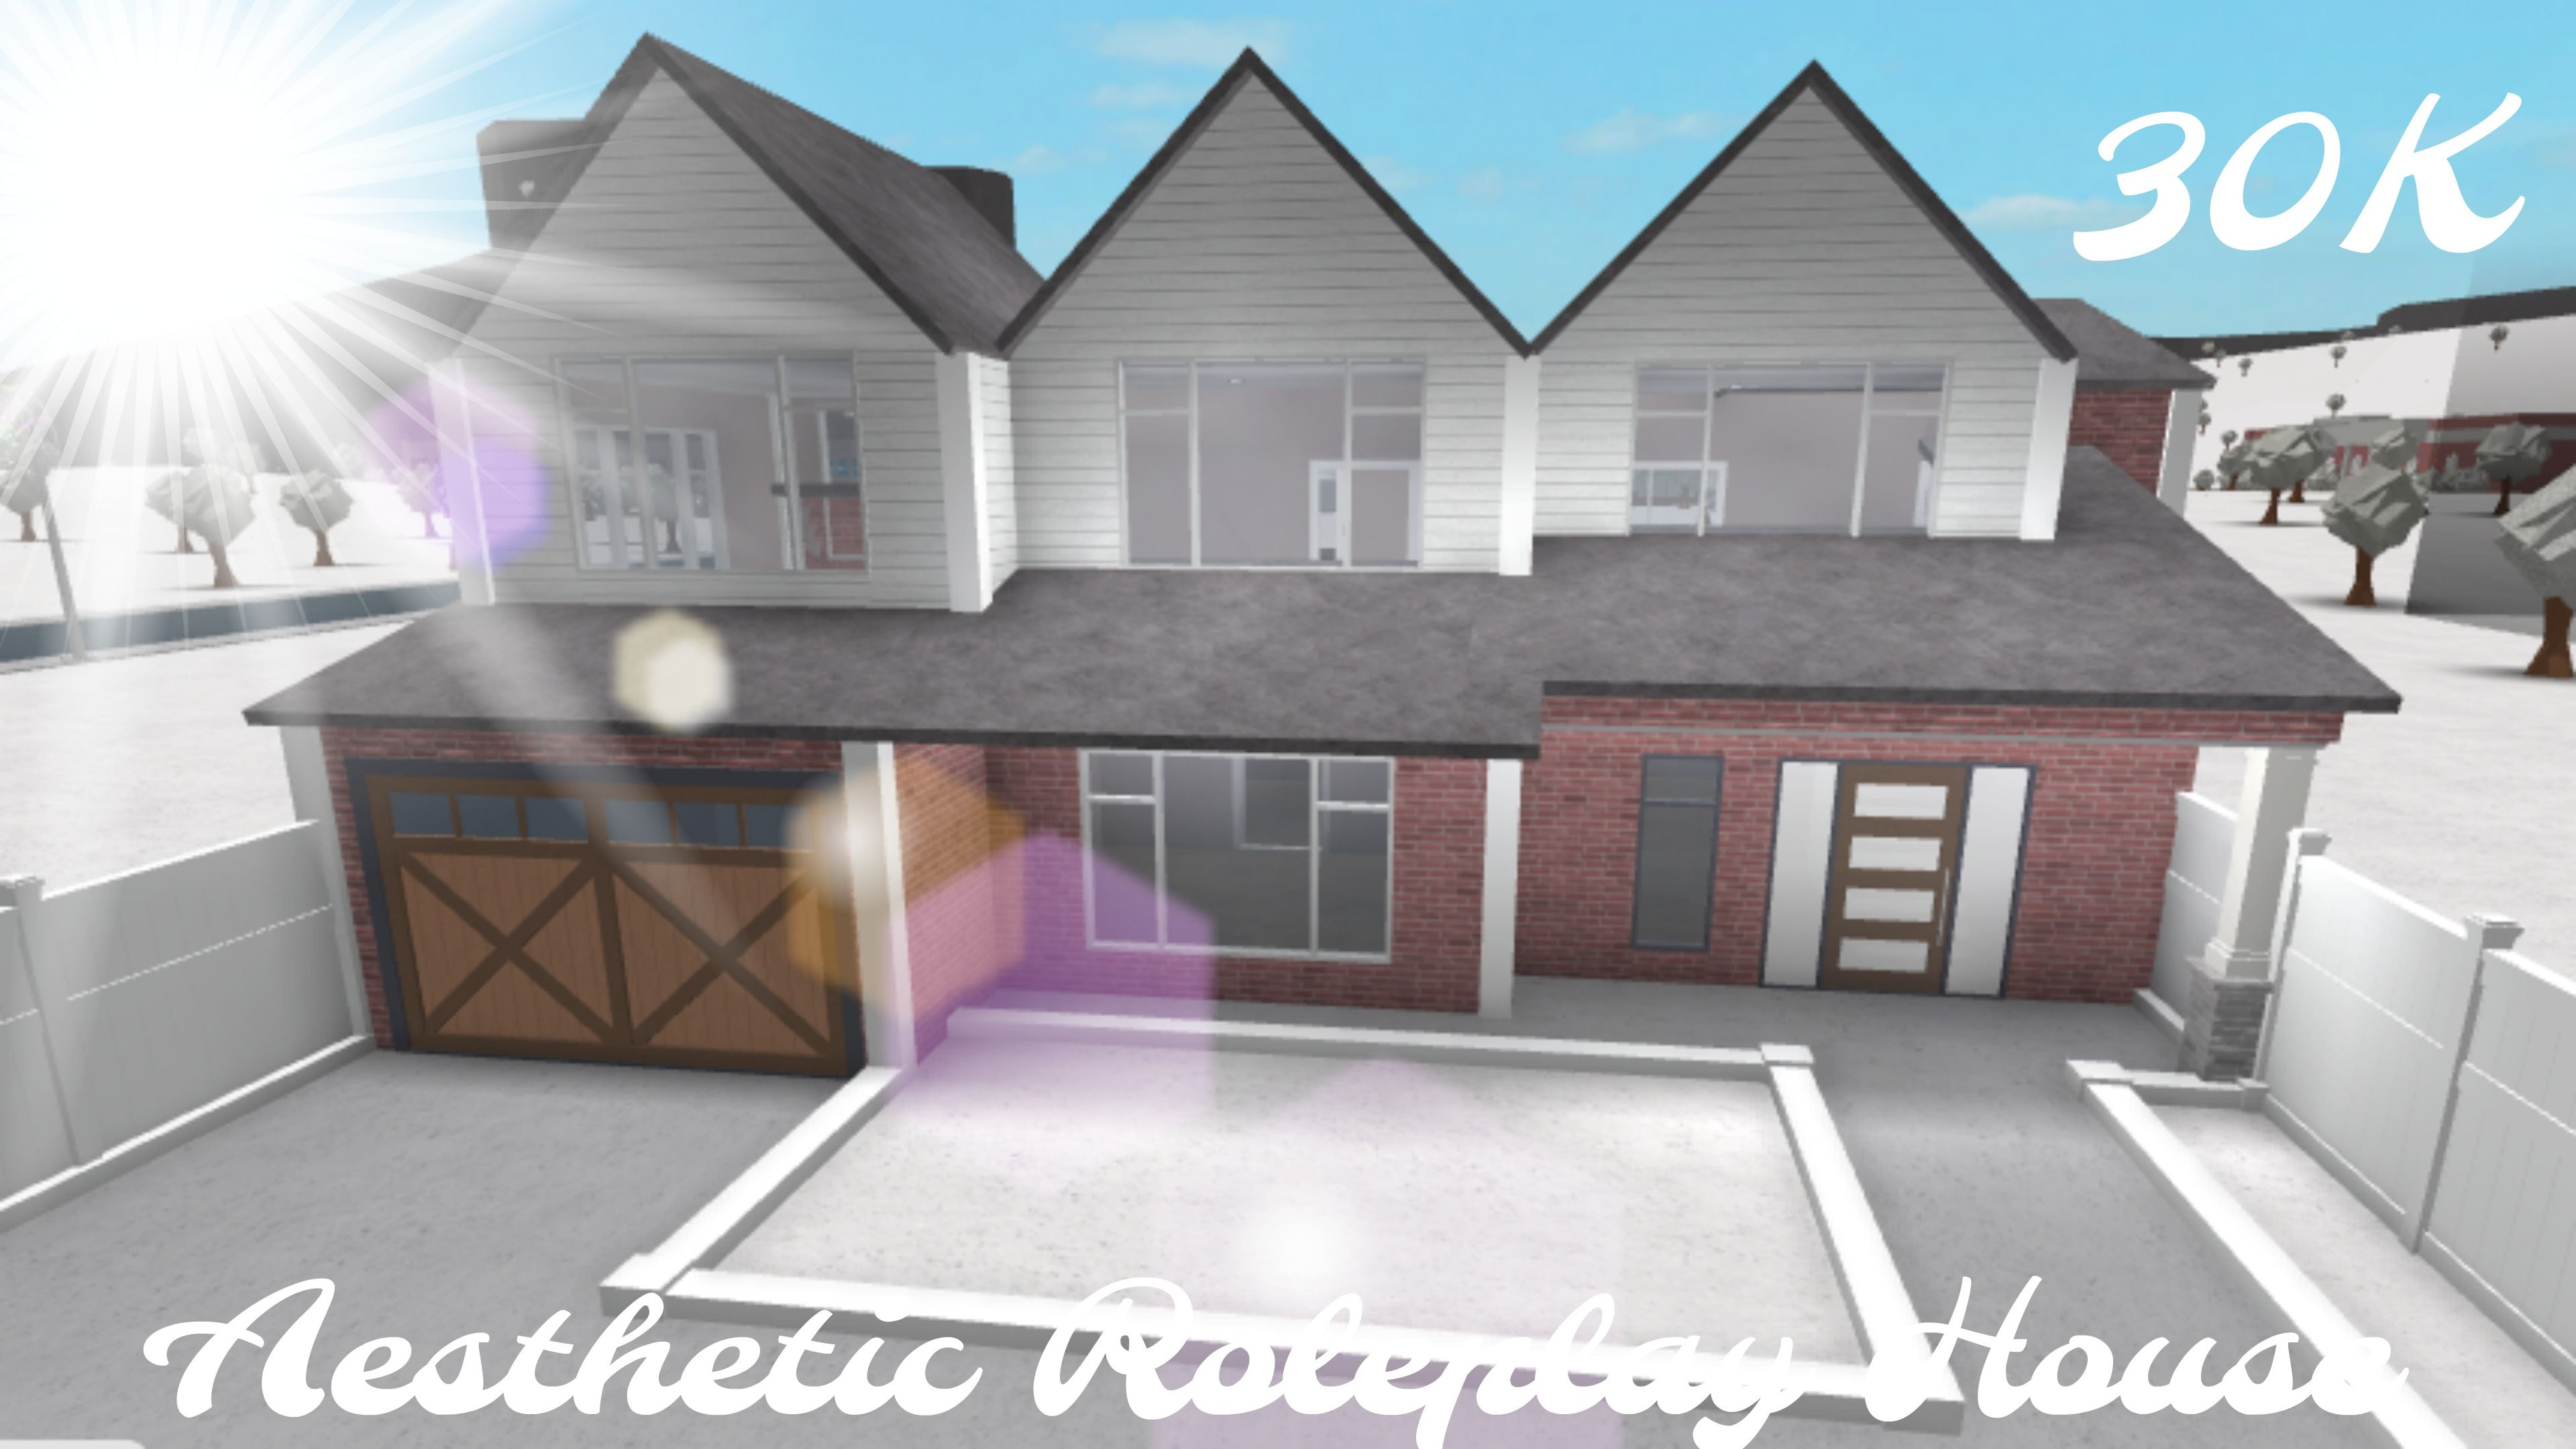 Aesthetic Roleplay House Modern House House Plans With Pictures Family House Plans House bills, house permissions, or household? aesthetic roleplay house modern house